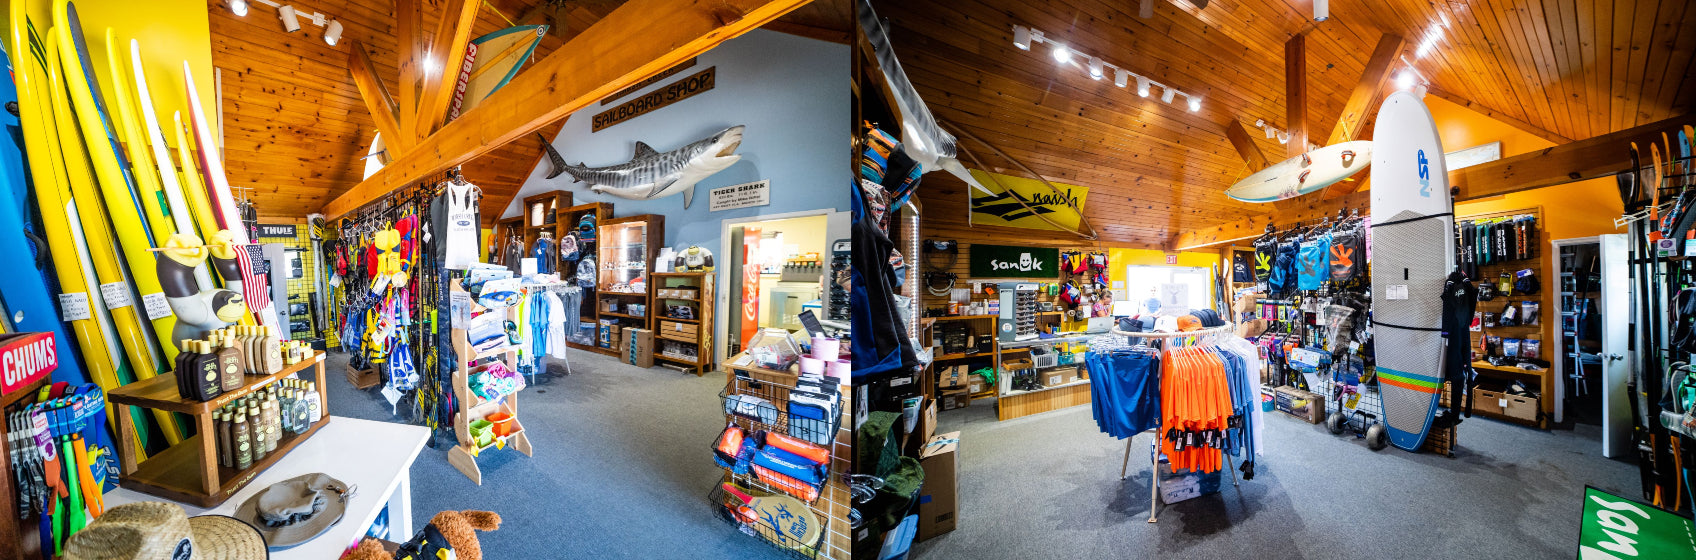 Marsh Creek Water Sports Store